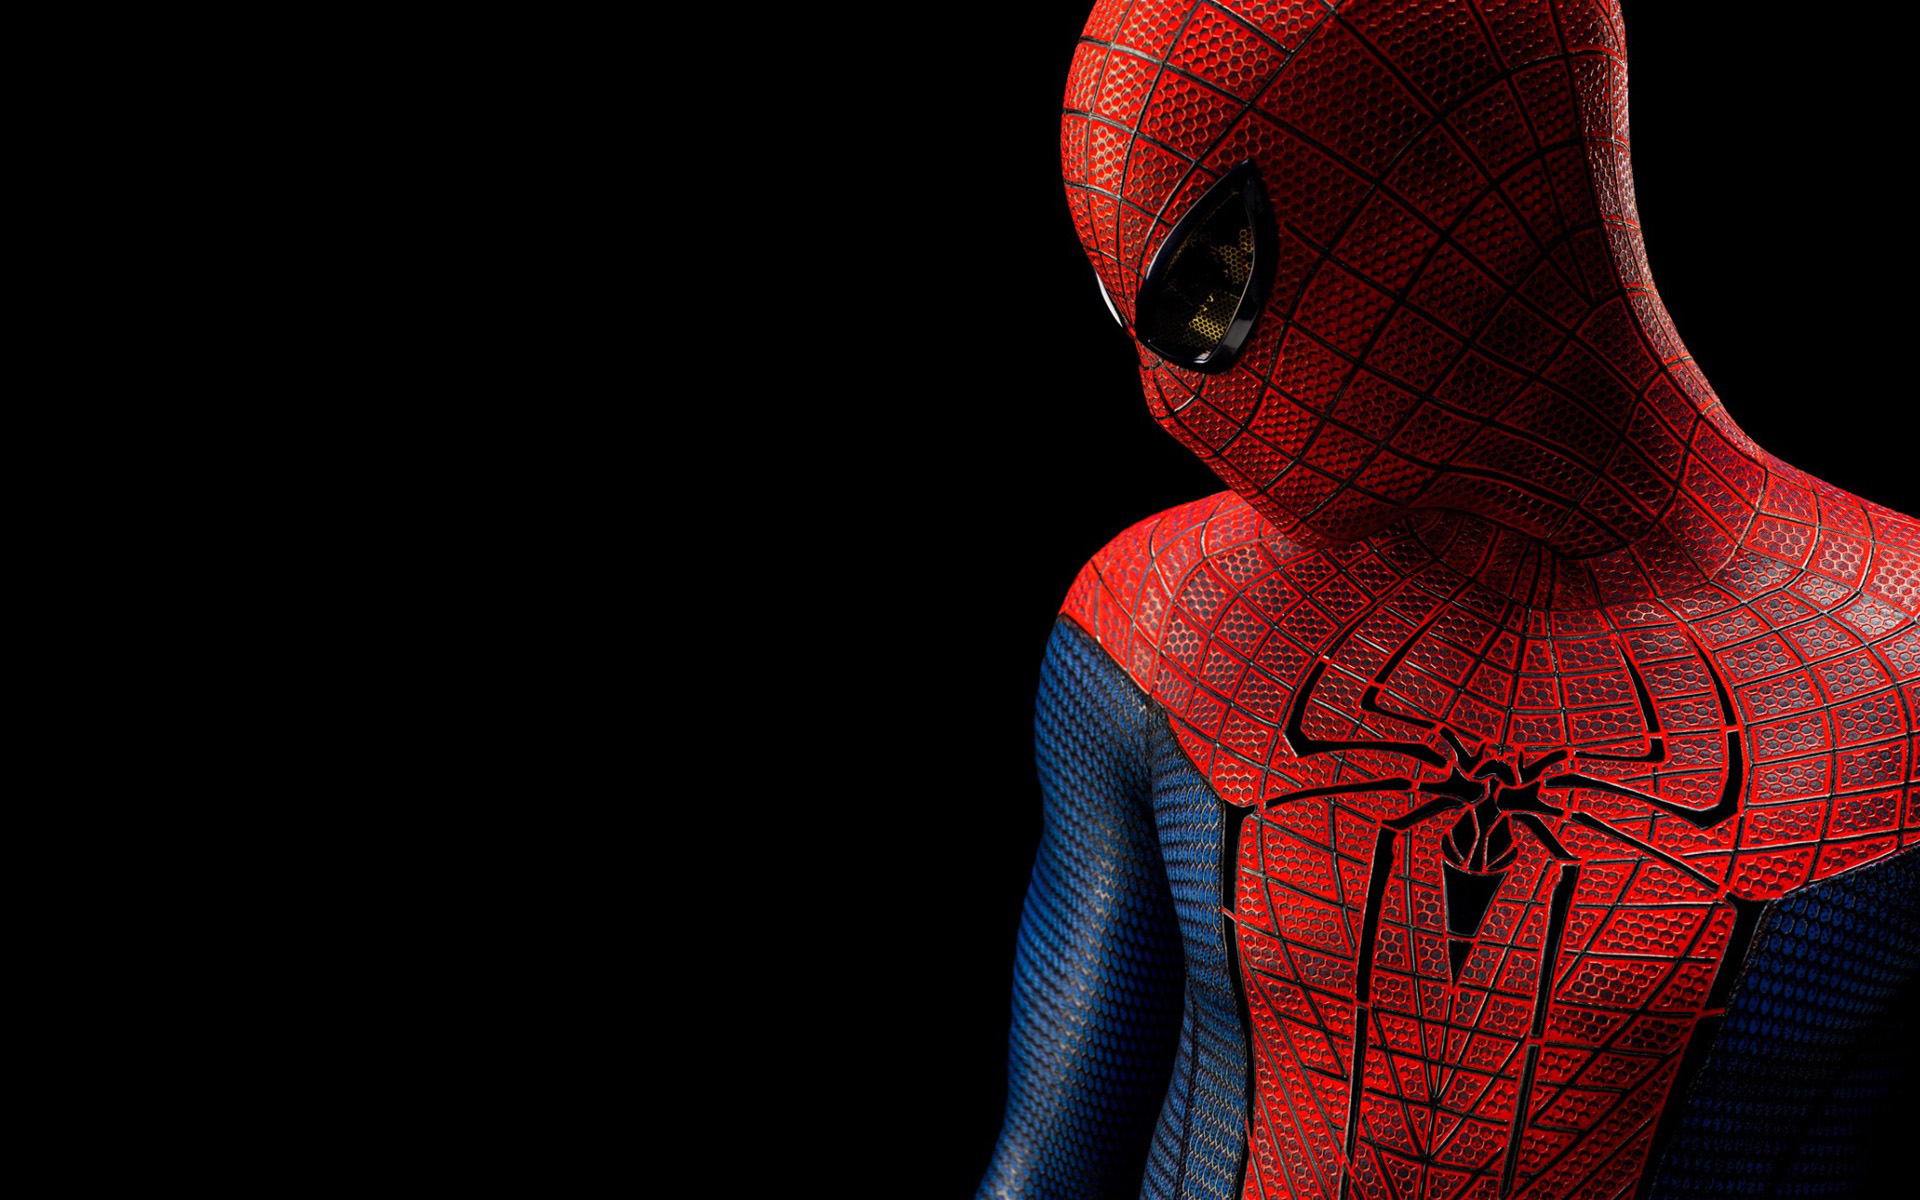 spiderman 4 hd wallpapers 1080p 1920x1200